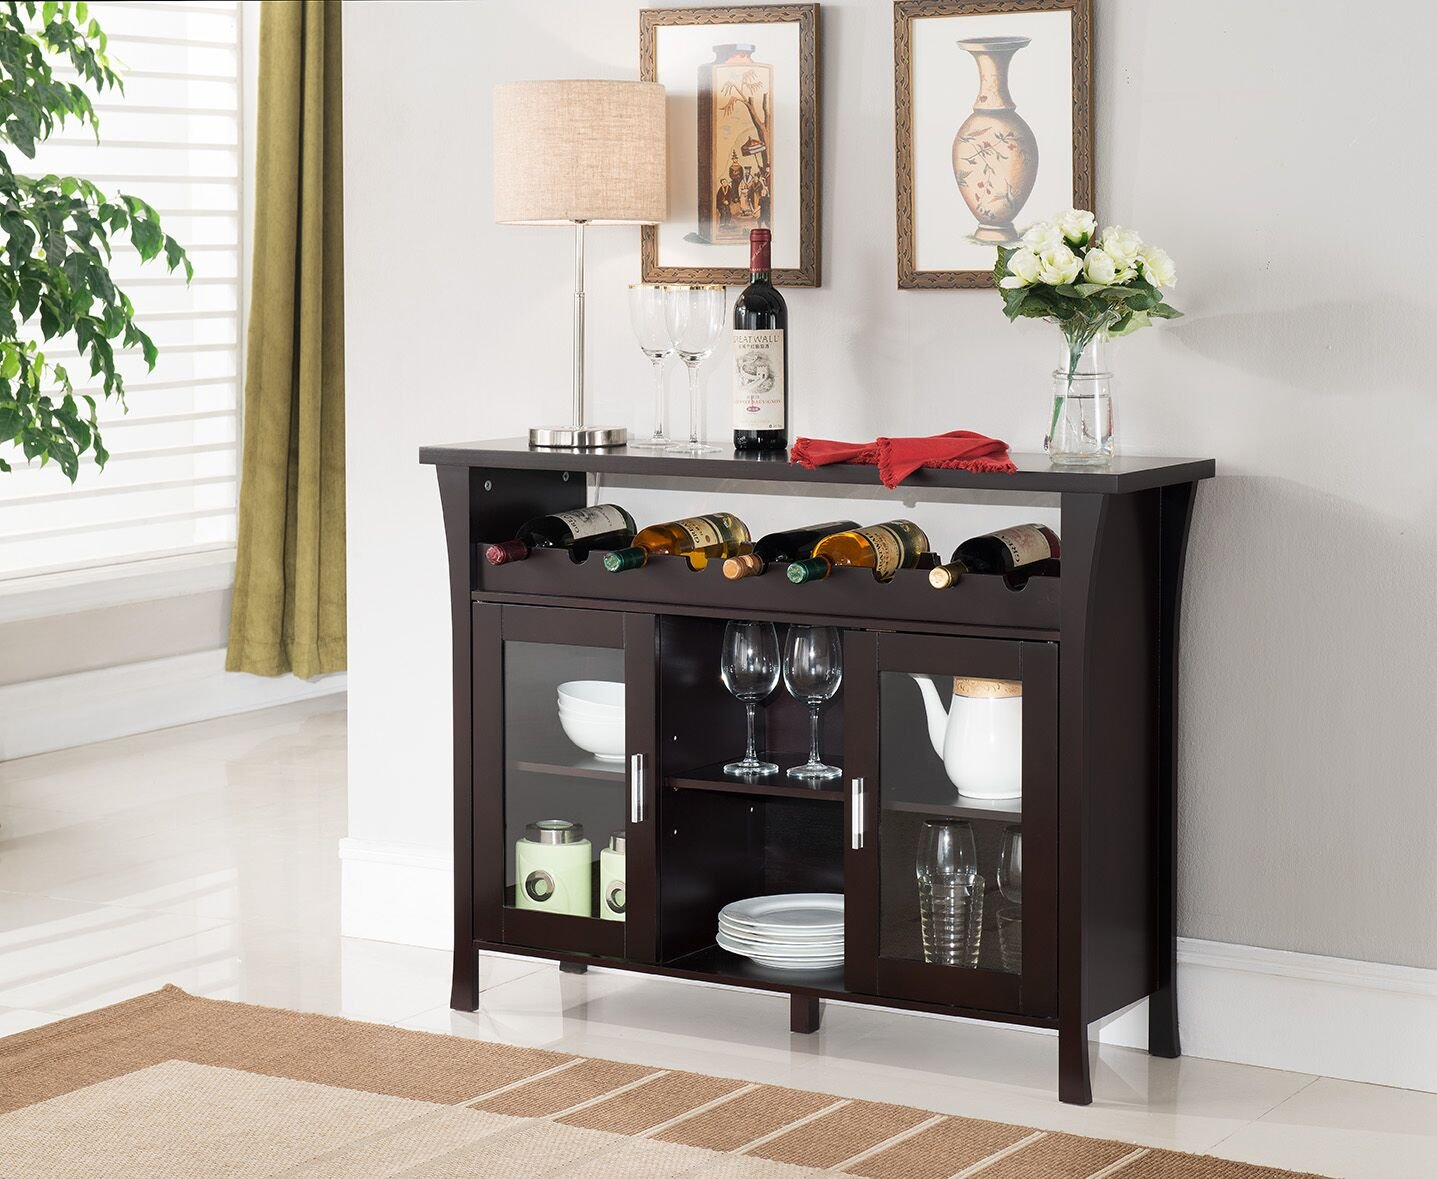 Kings Brand Furniture Wine Rack Buffet Server Console Table with Glass Doors, Espresso by Kings Brand Furniture